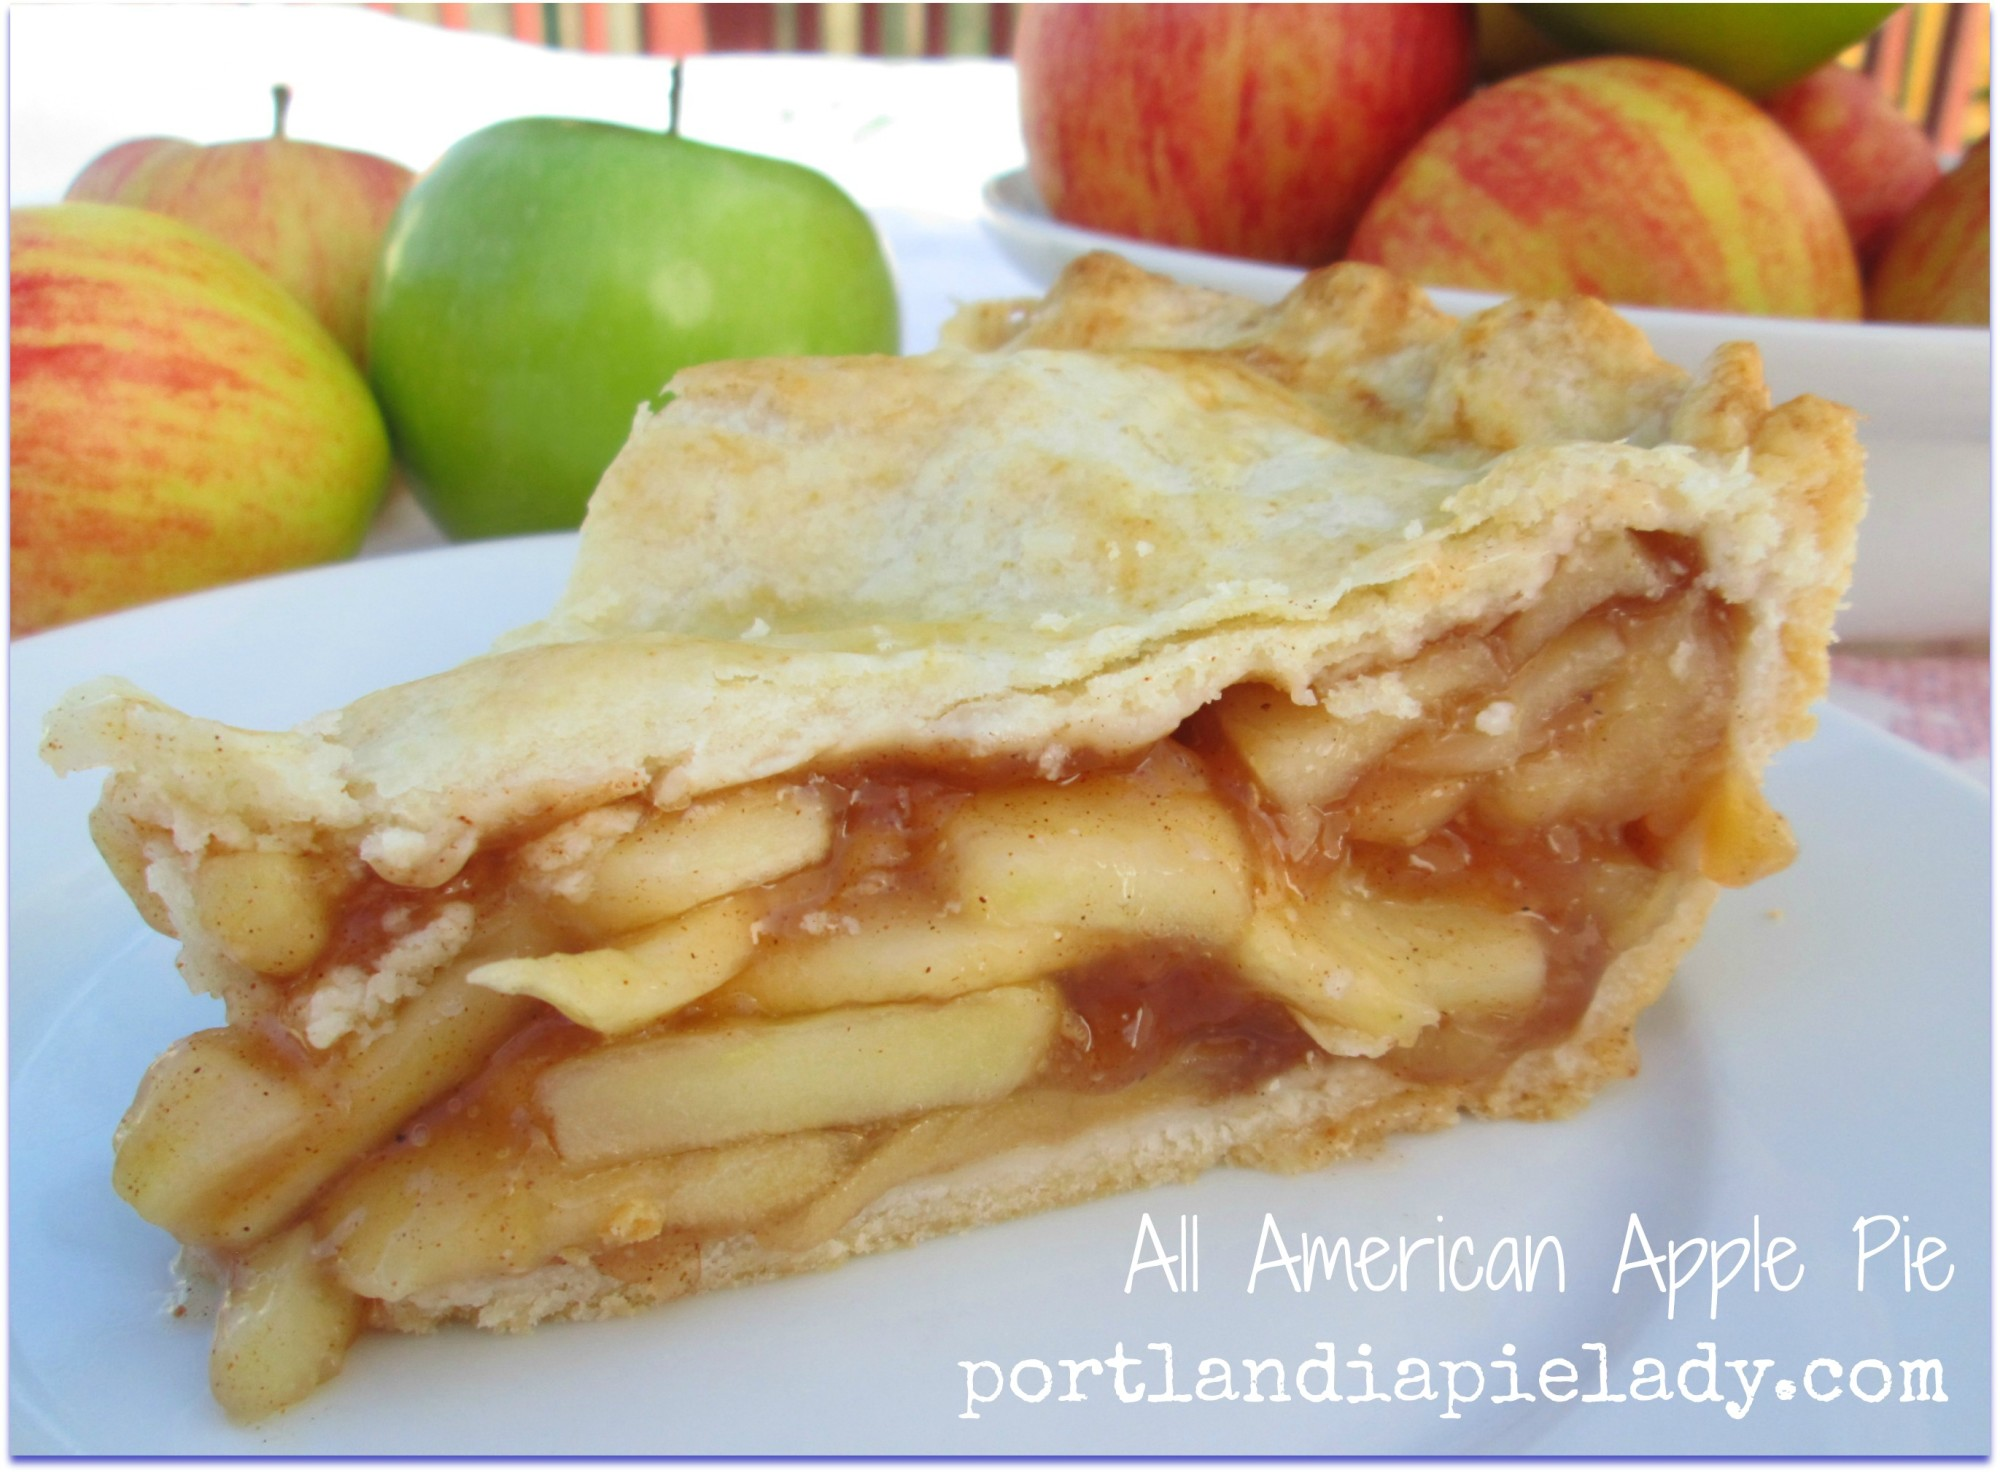 All American Apple Pie: Take your favorite combination of Fall fresh off-the-tree tart apples and cider and bake it into this All American Classic Apple Pie!